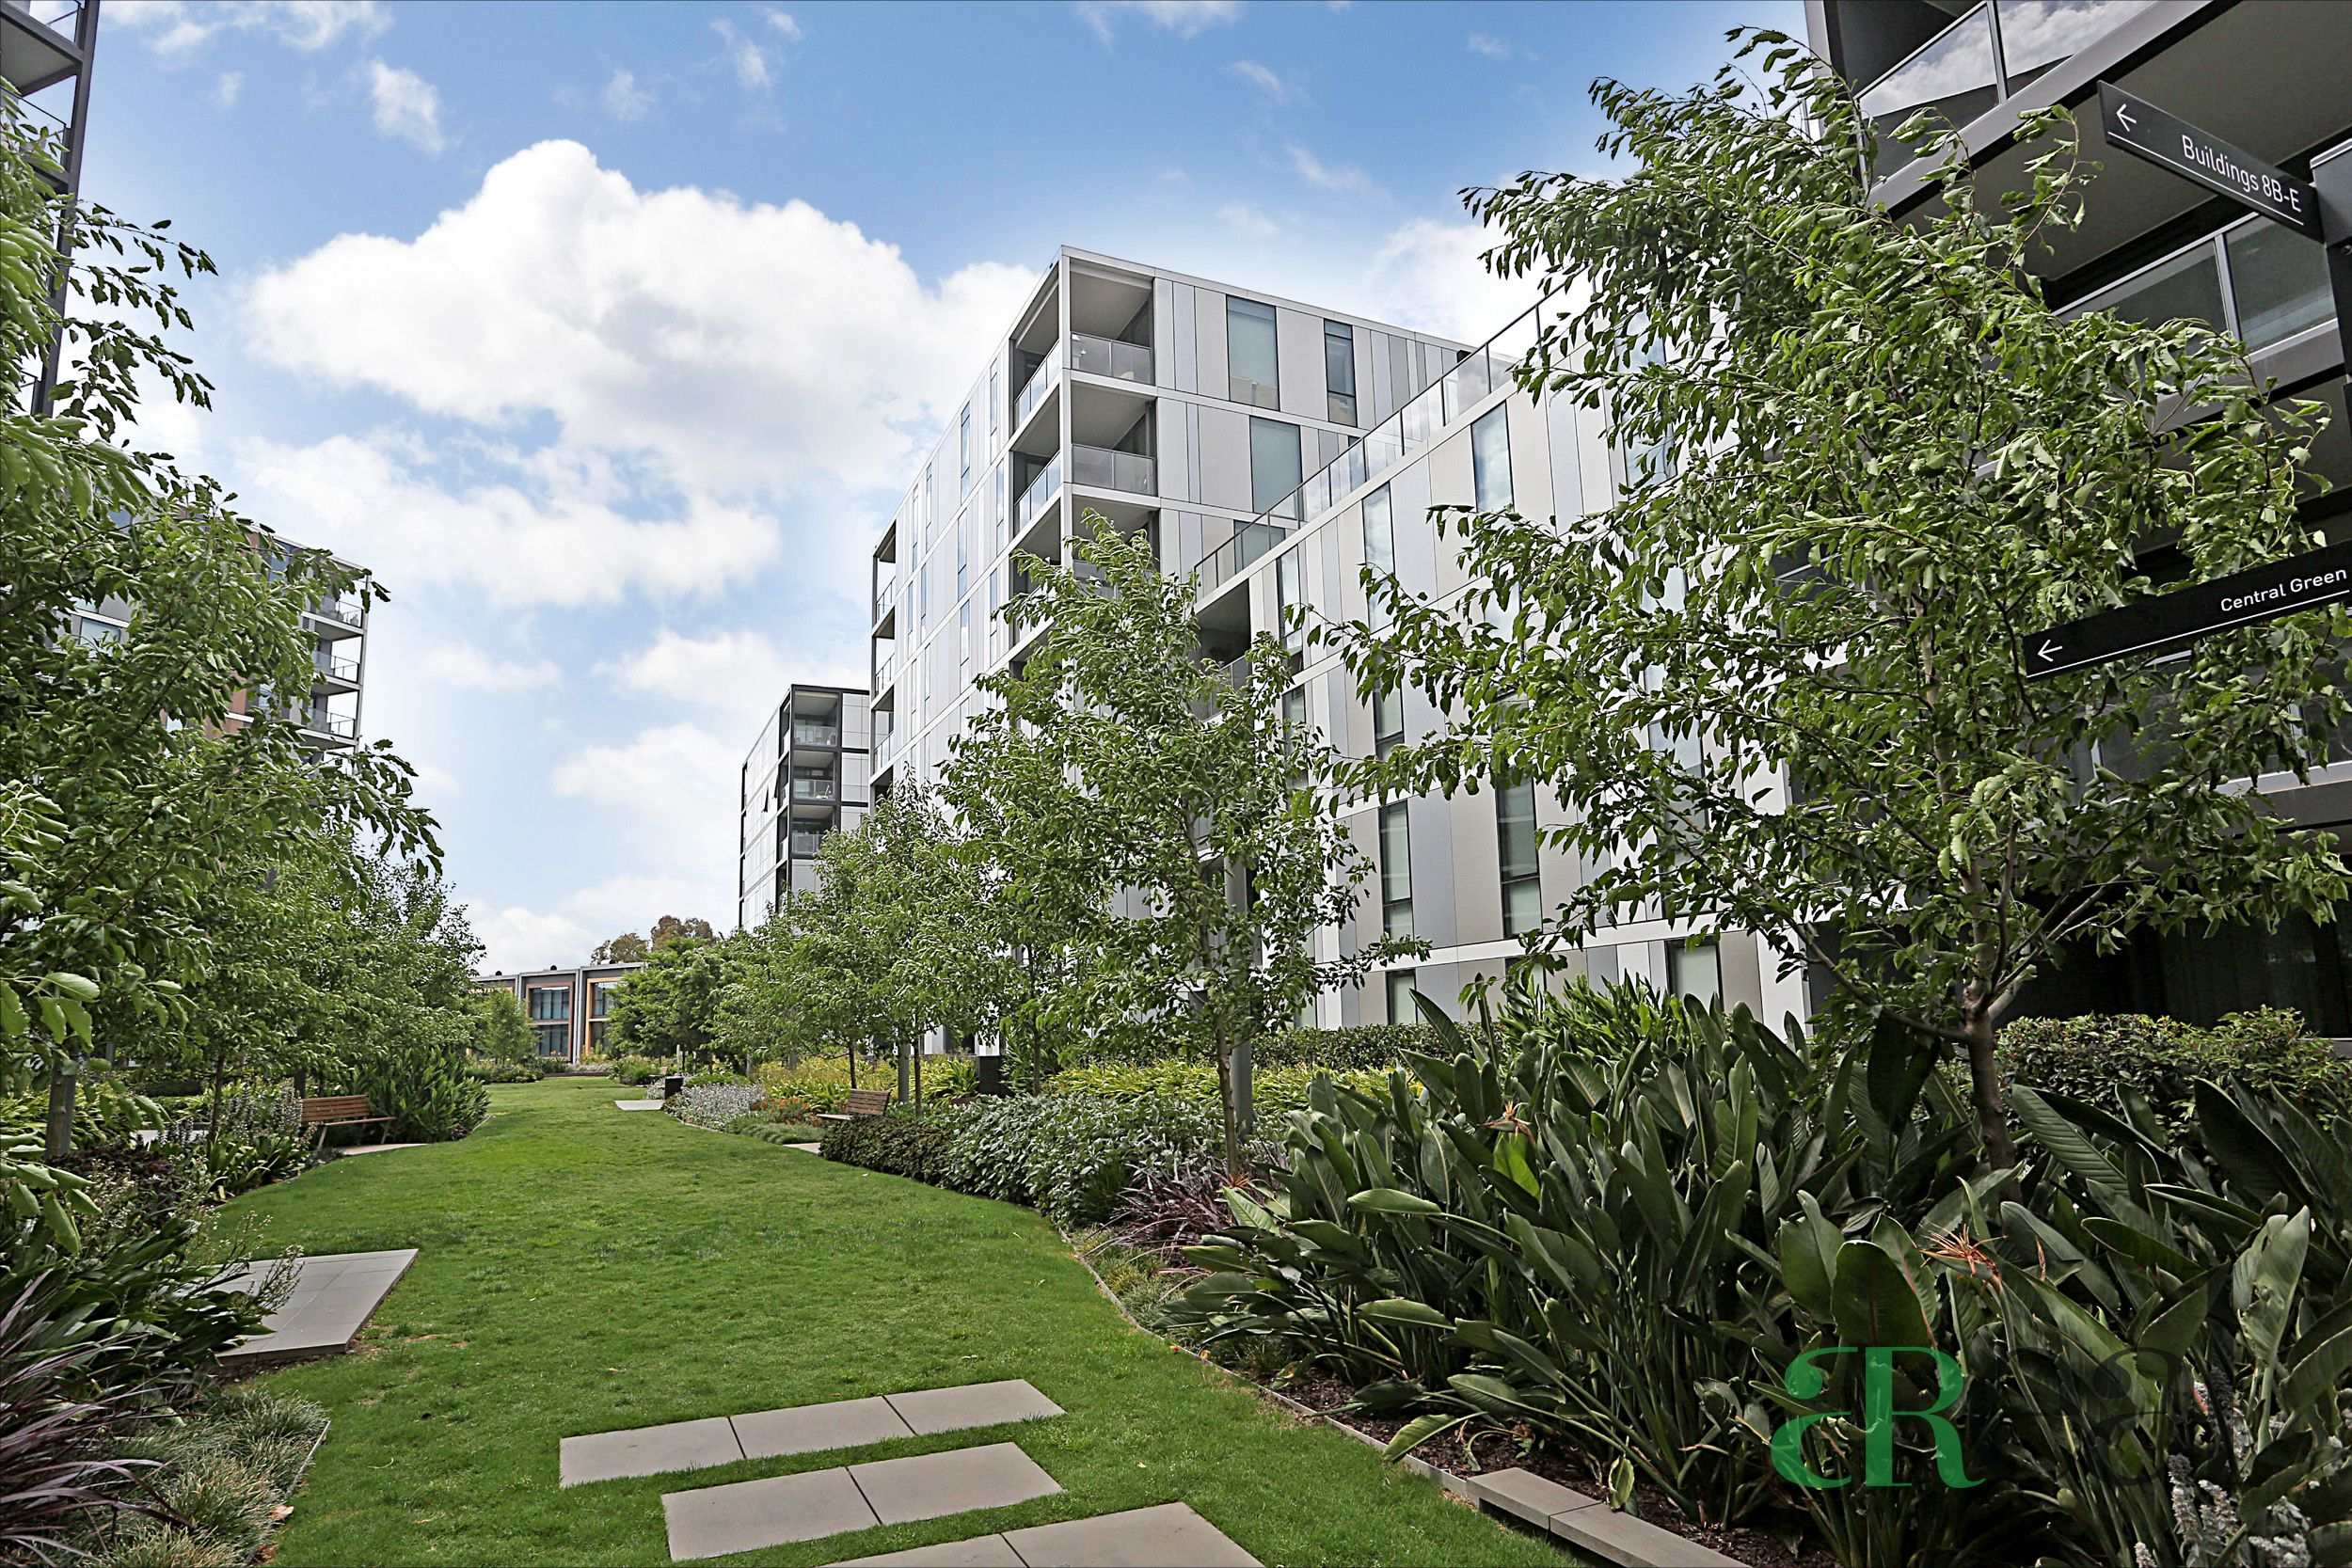 5/1 Evergreen Mews, Armadale VIC 3143